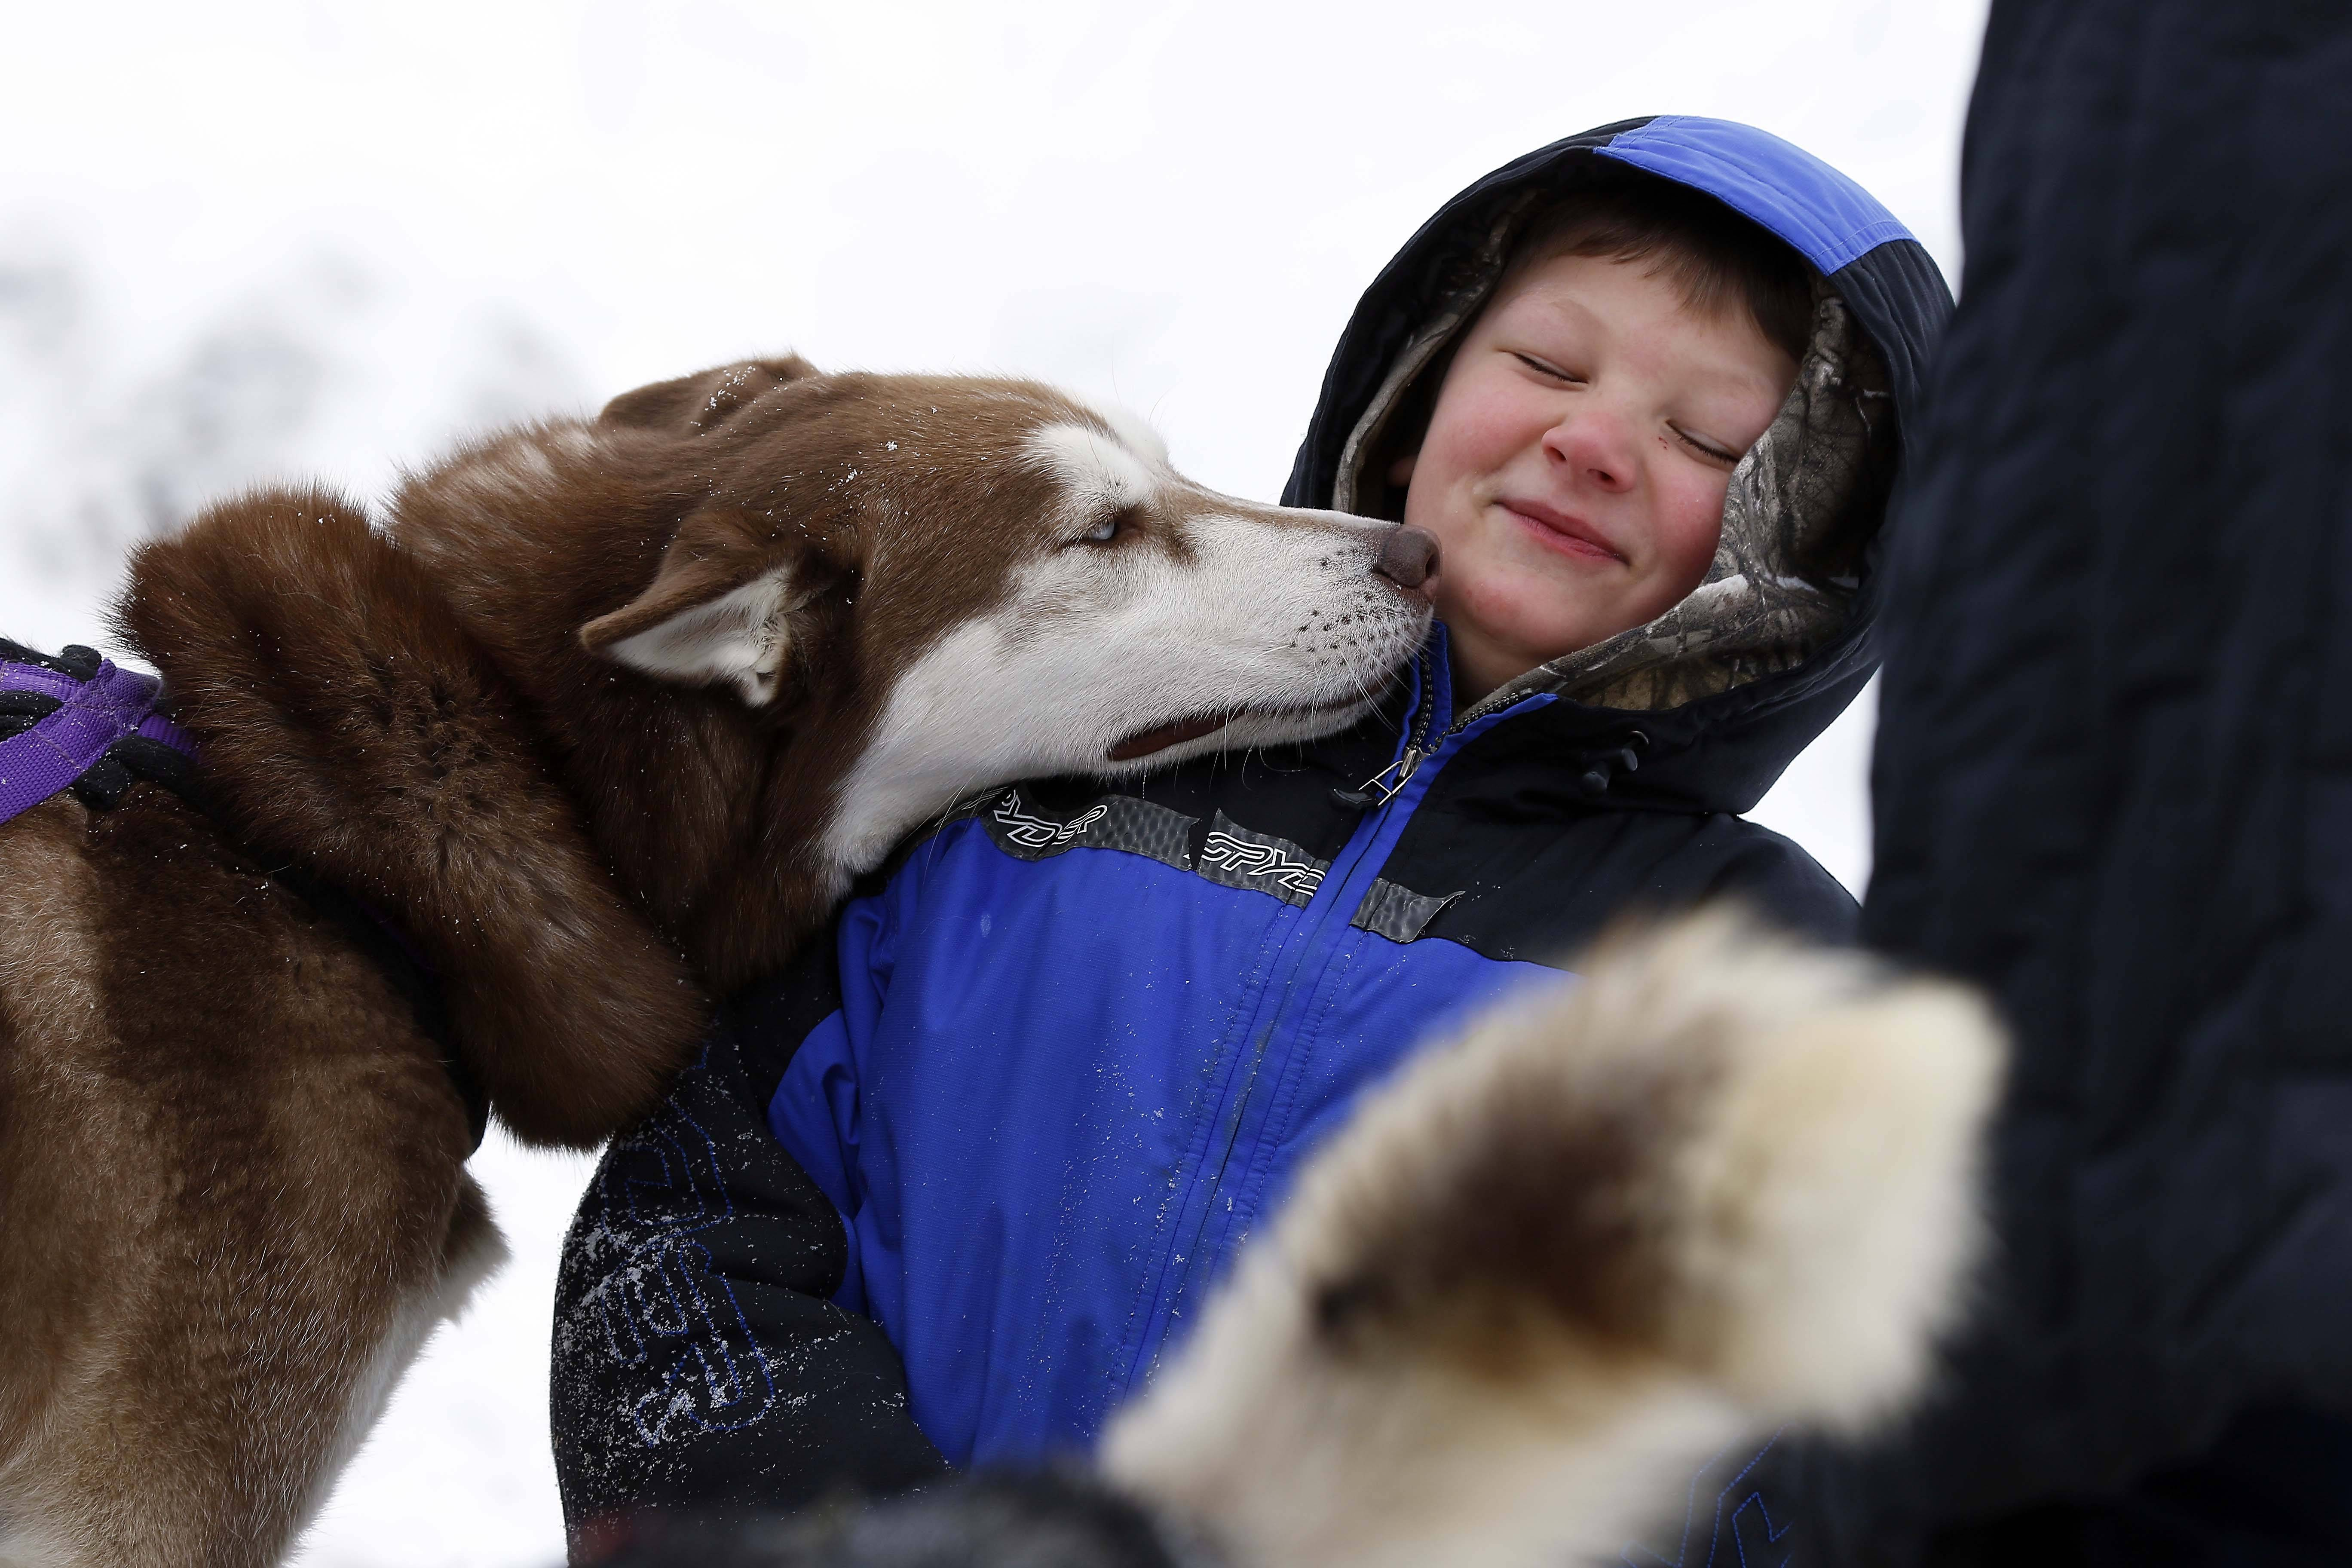 Six-year-old Alex Rottmann of Campton gets up close to a husky who on site to do demonstrations Saturday during the The Winter Wonders event at Campton Township Community Center.